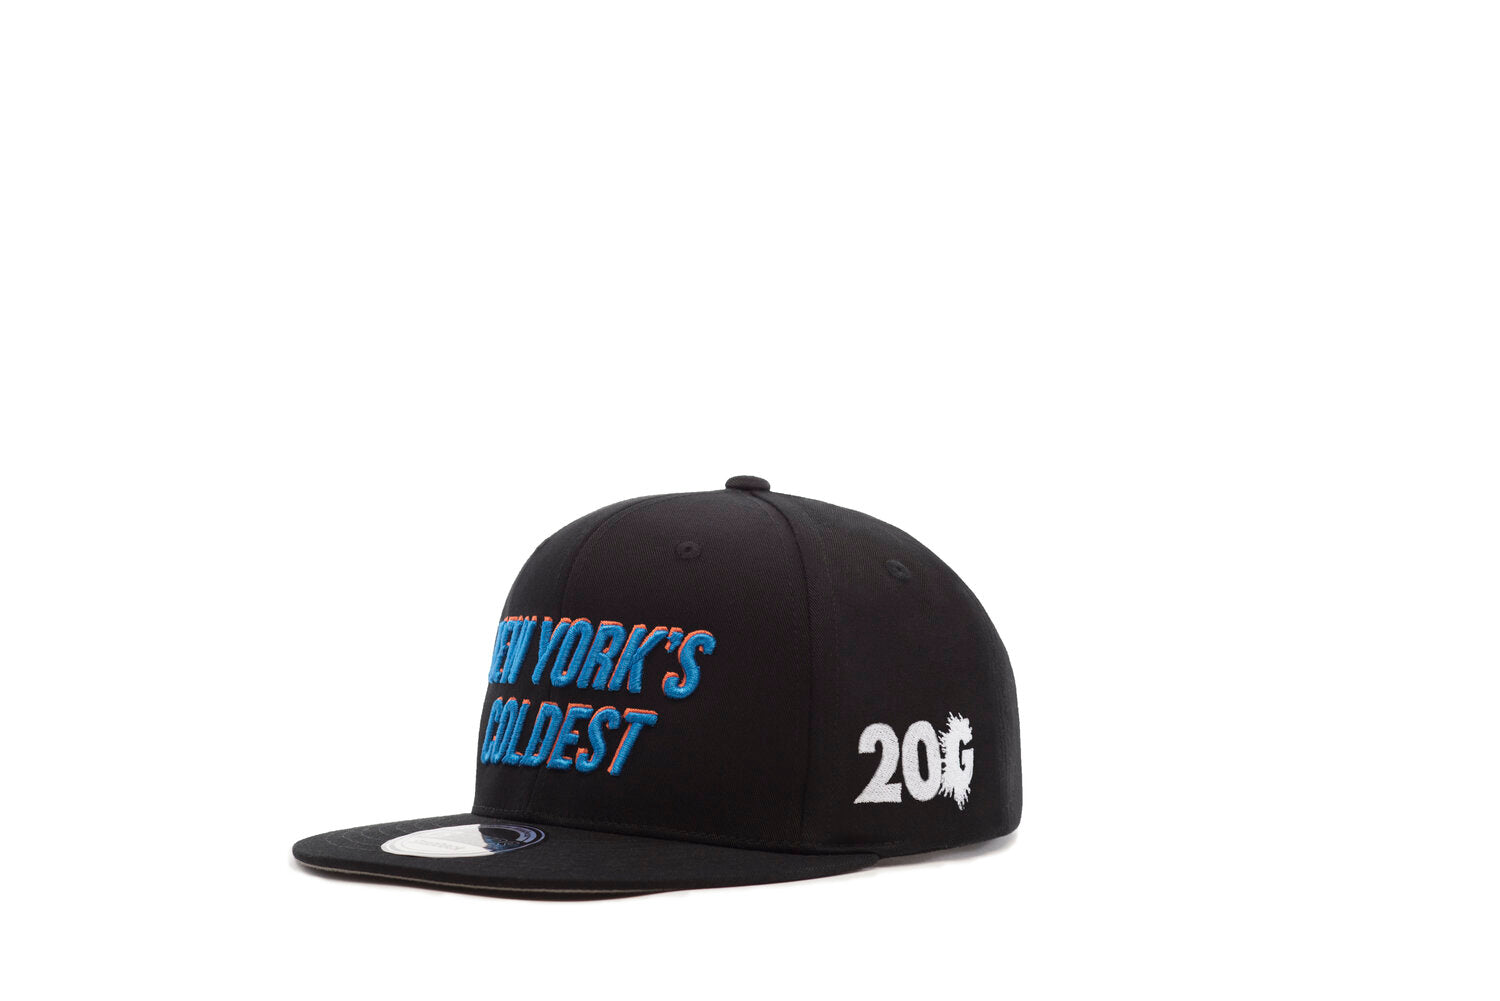 NEW YORK'S COLDEST SNAPBACK